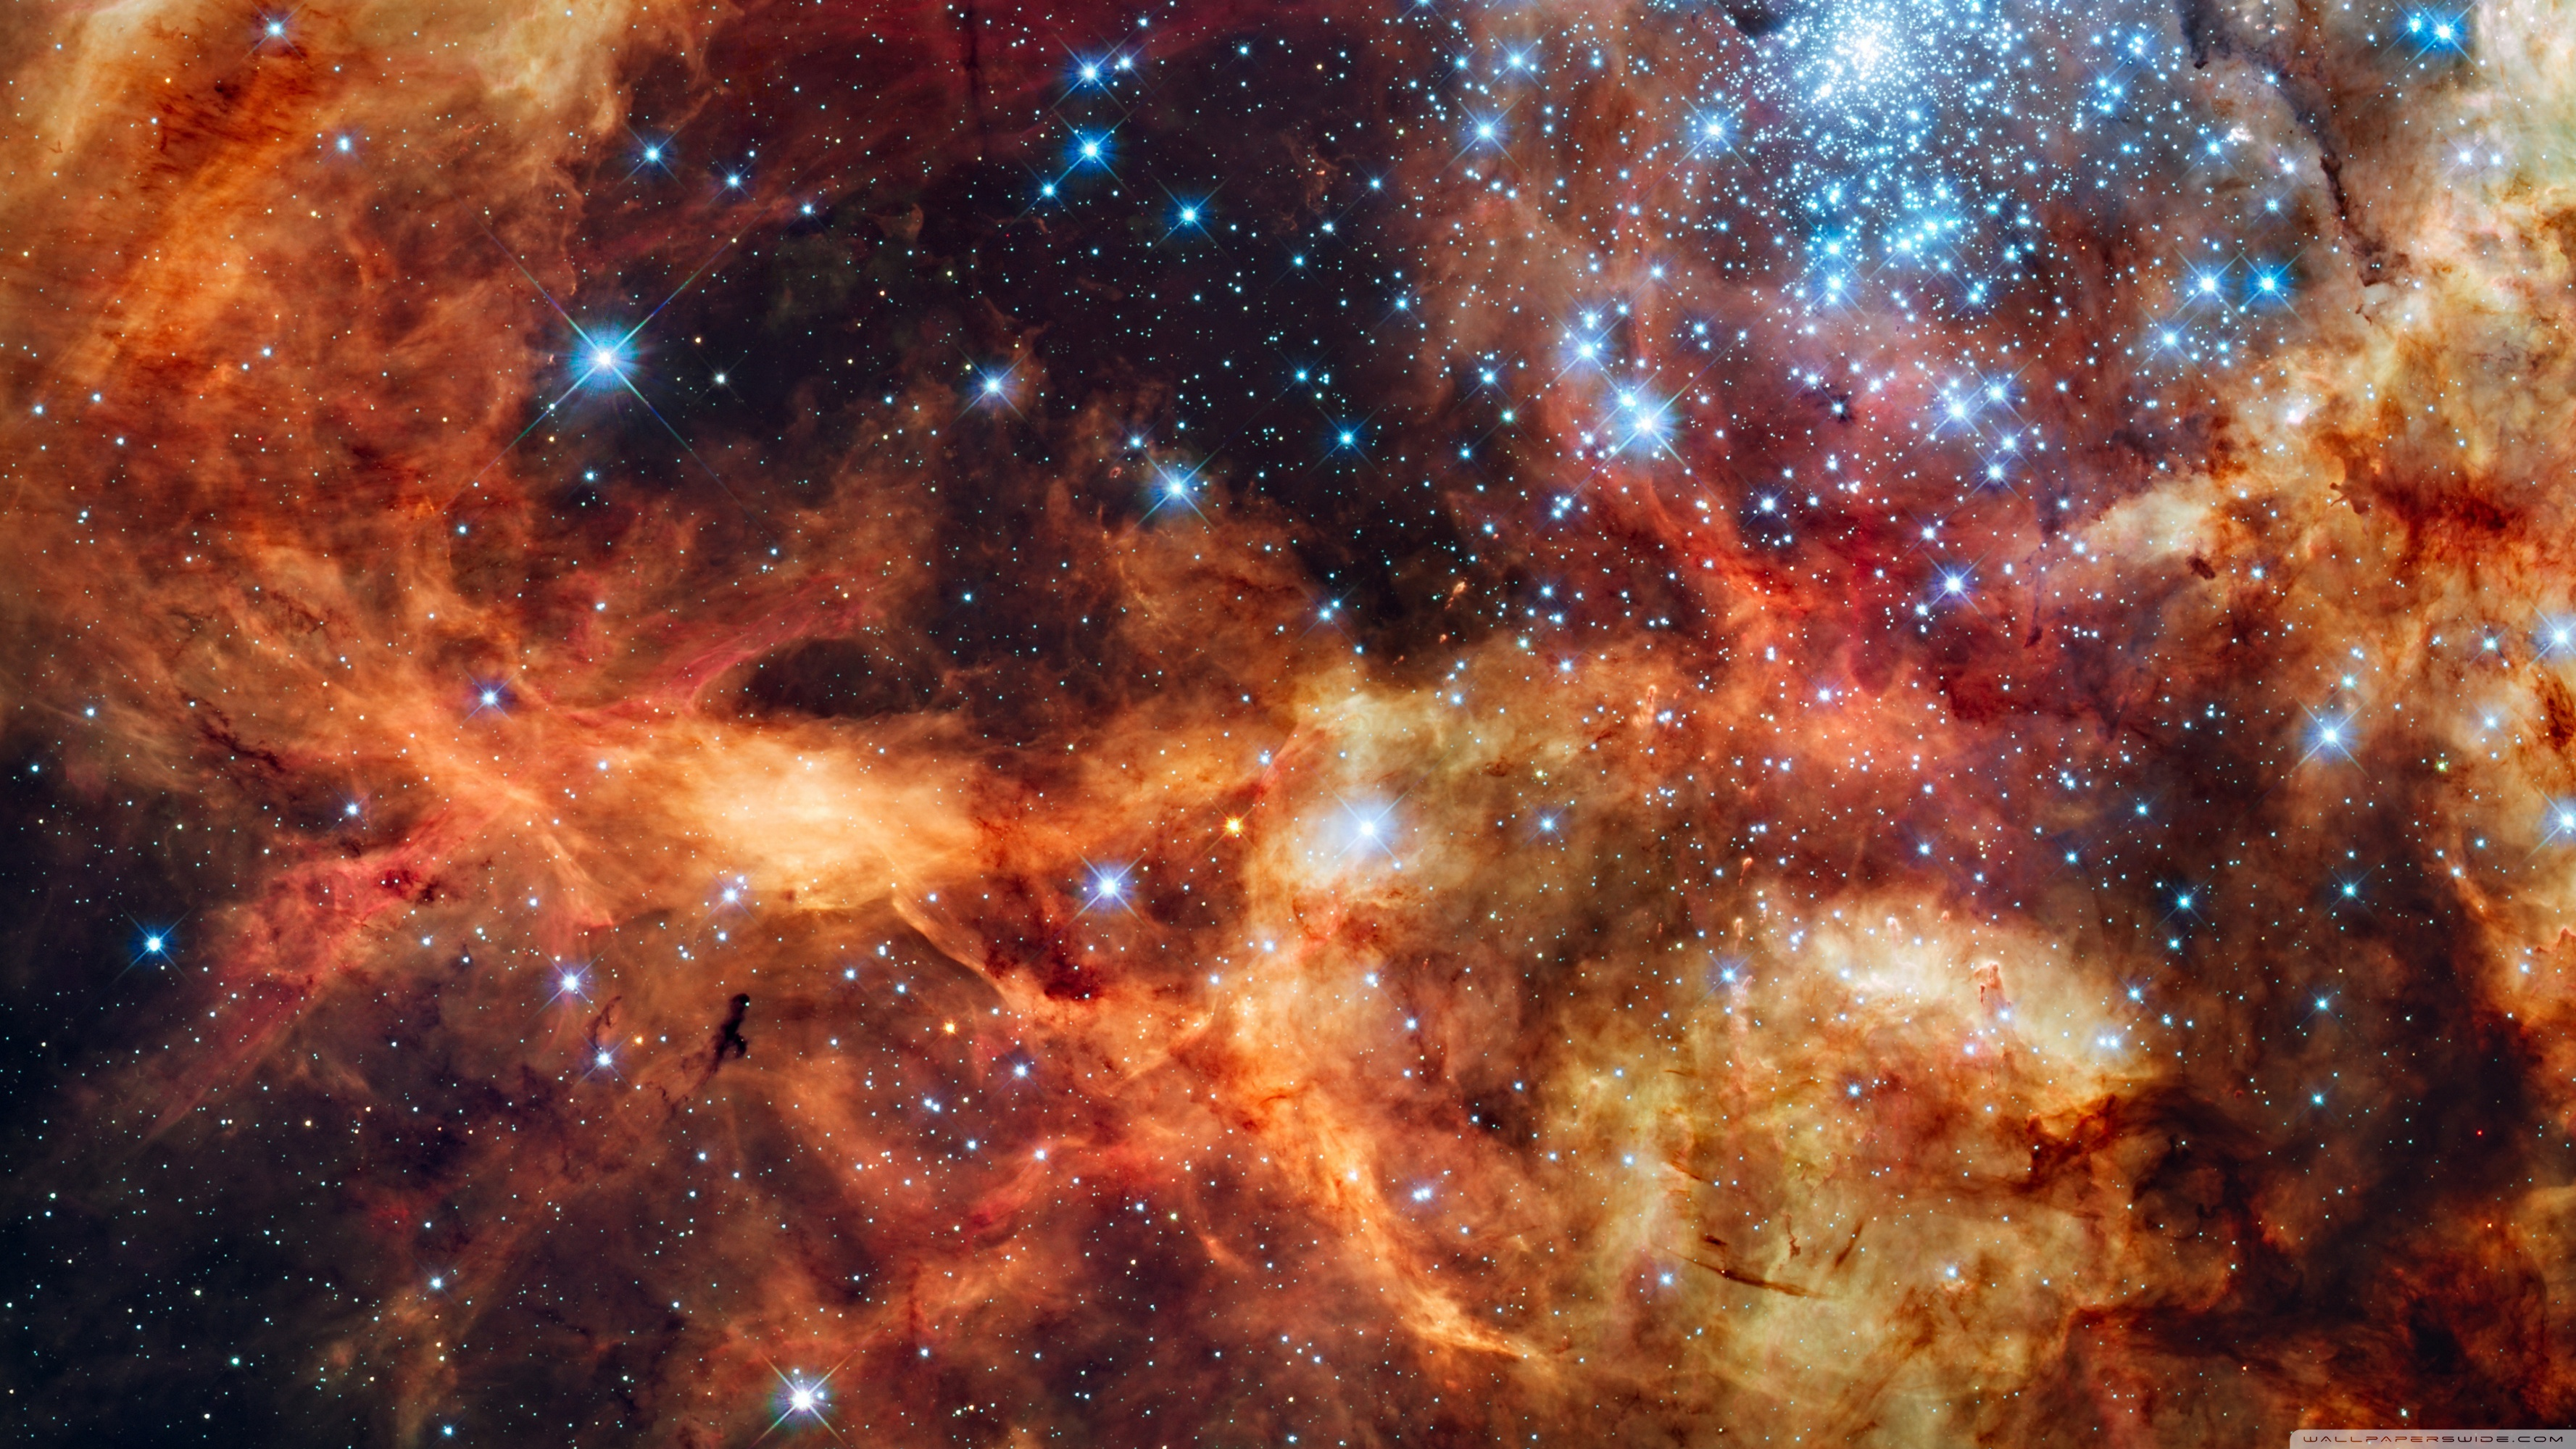 3554x1999 - Star Cluster Wallpapers 28